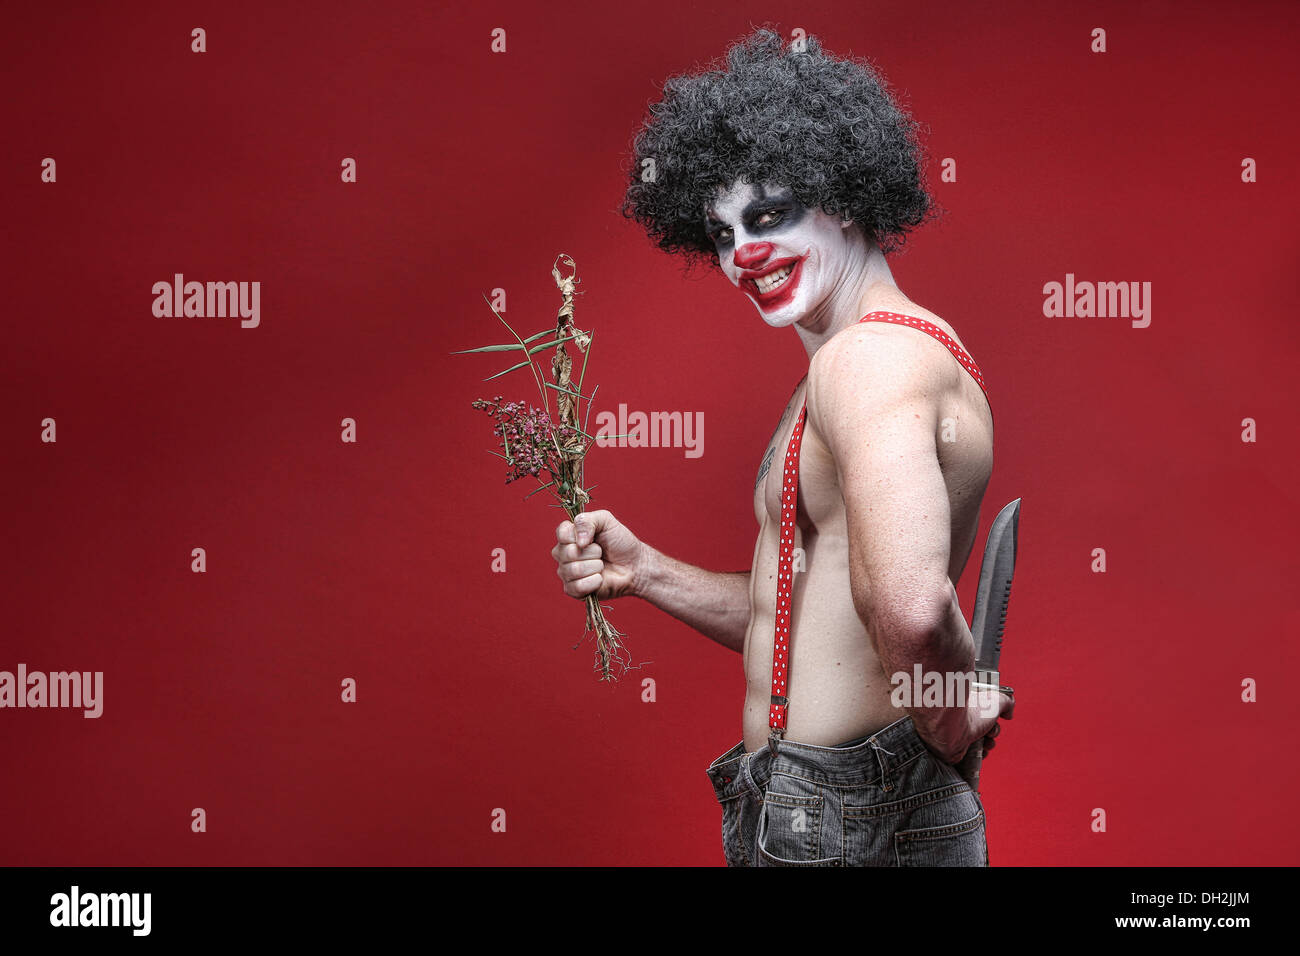 Evil Clown effrayant Portrait sur fond rouge Photo Stock